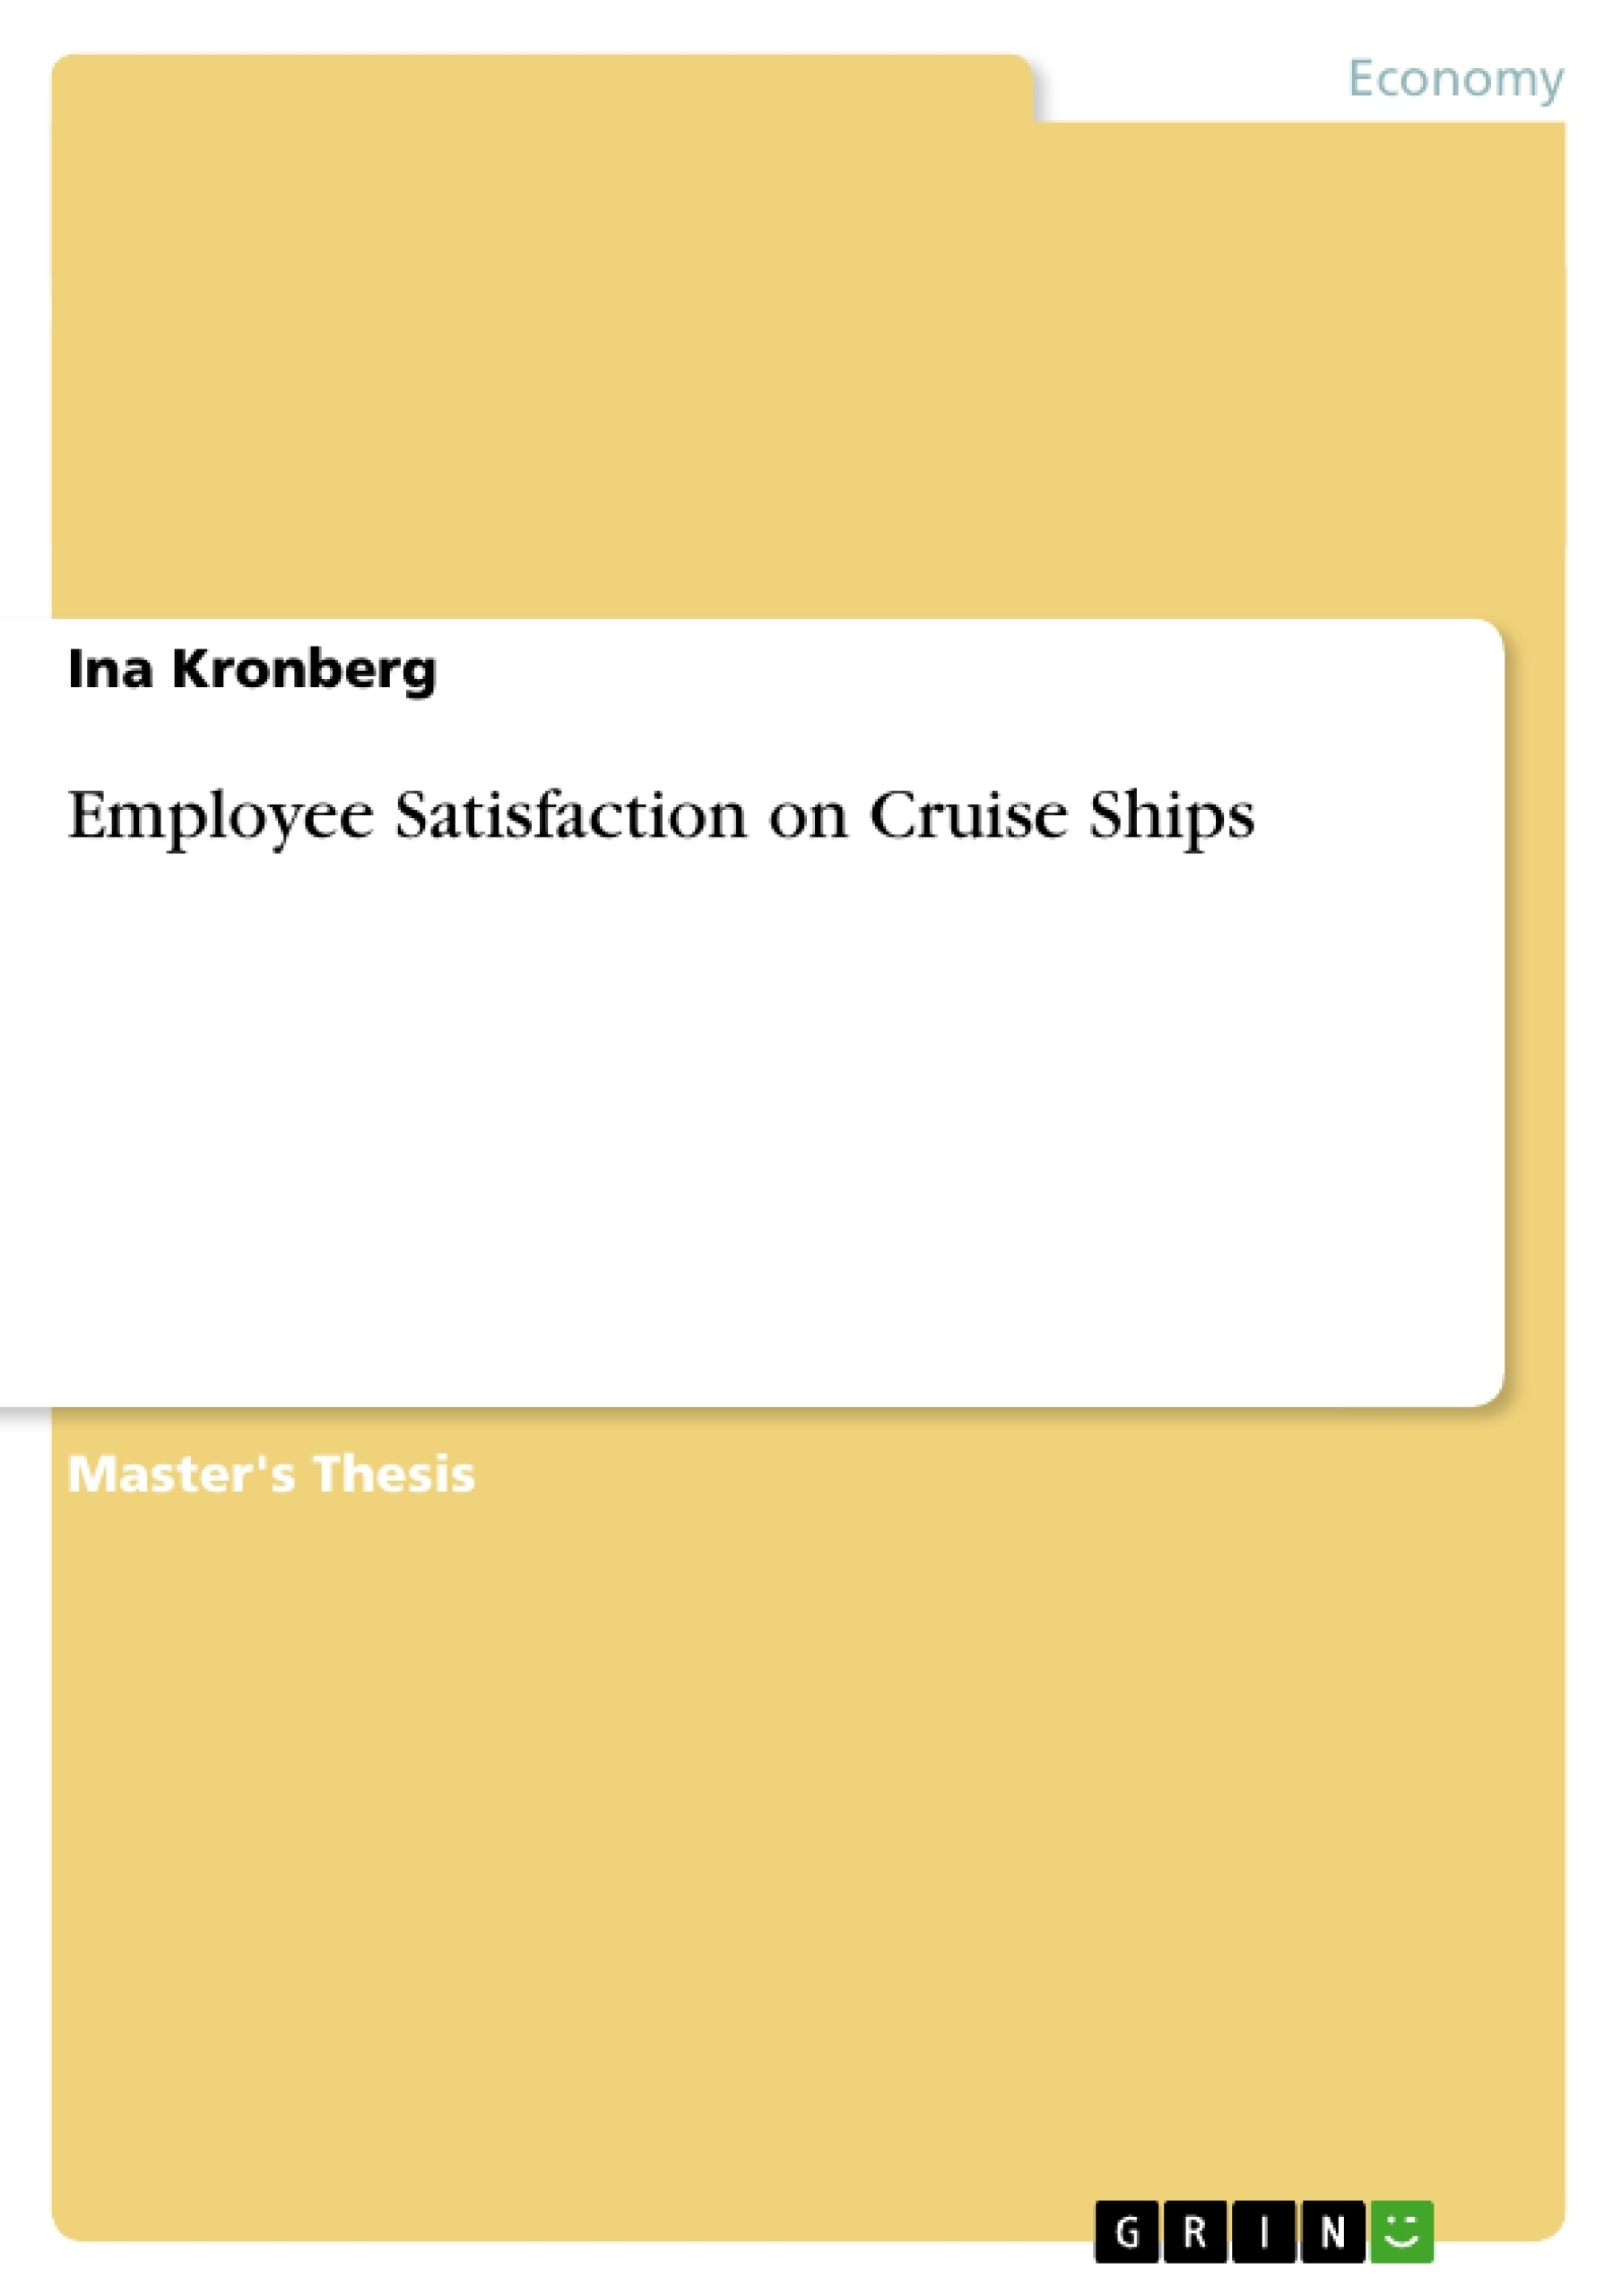 The cruise industry essay